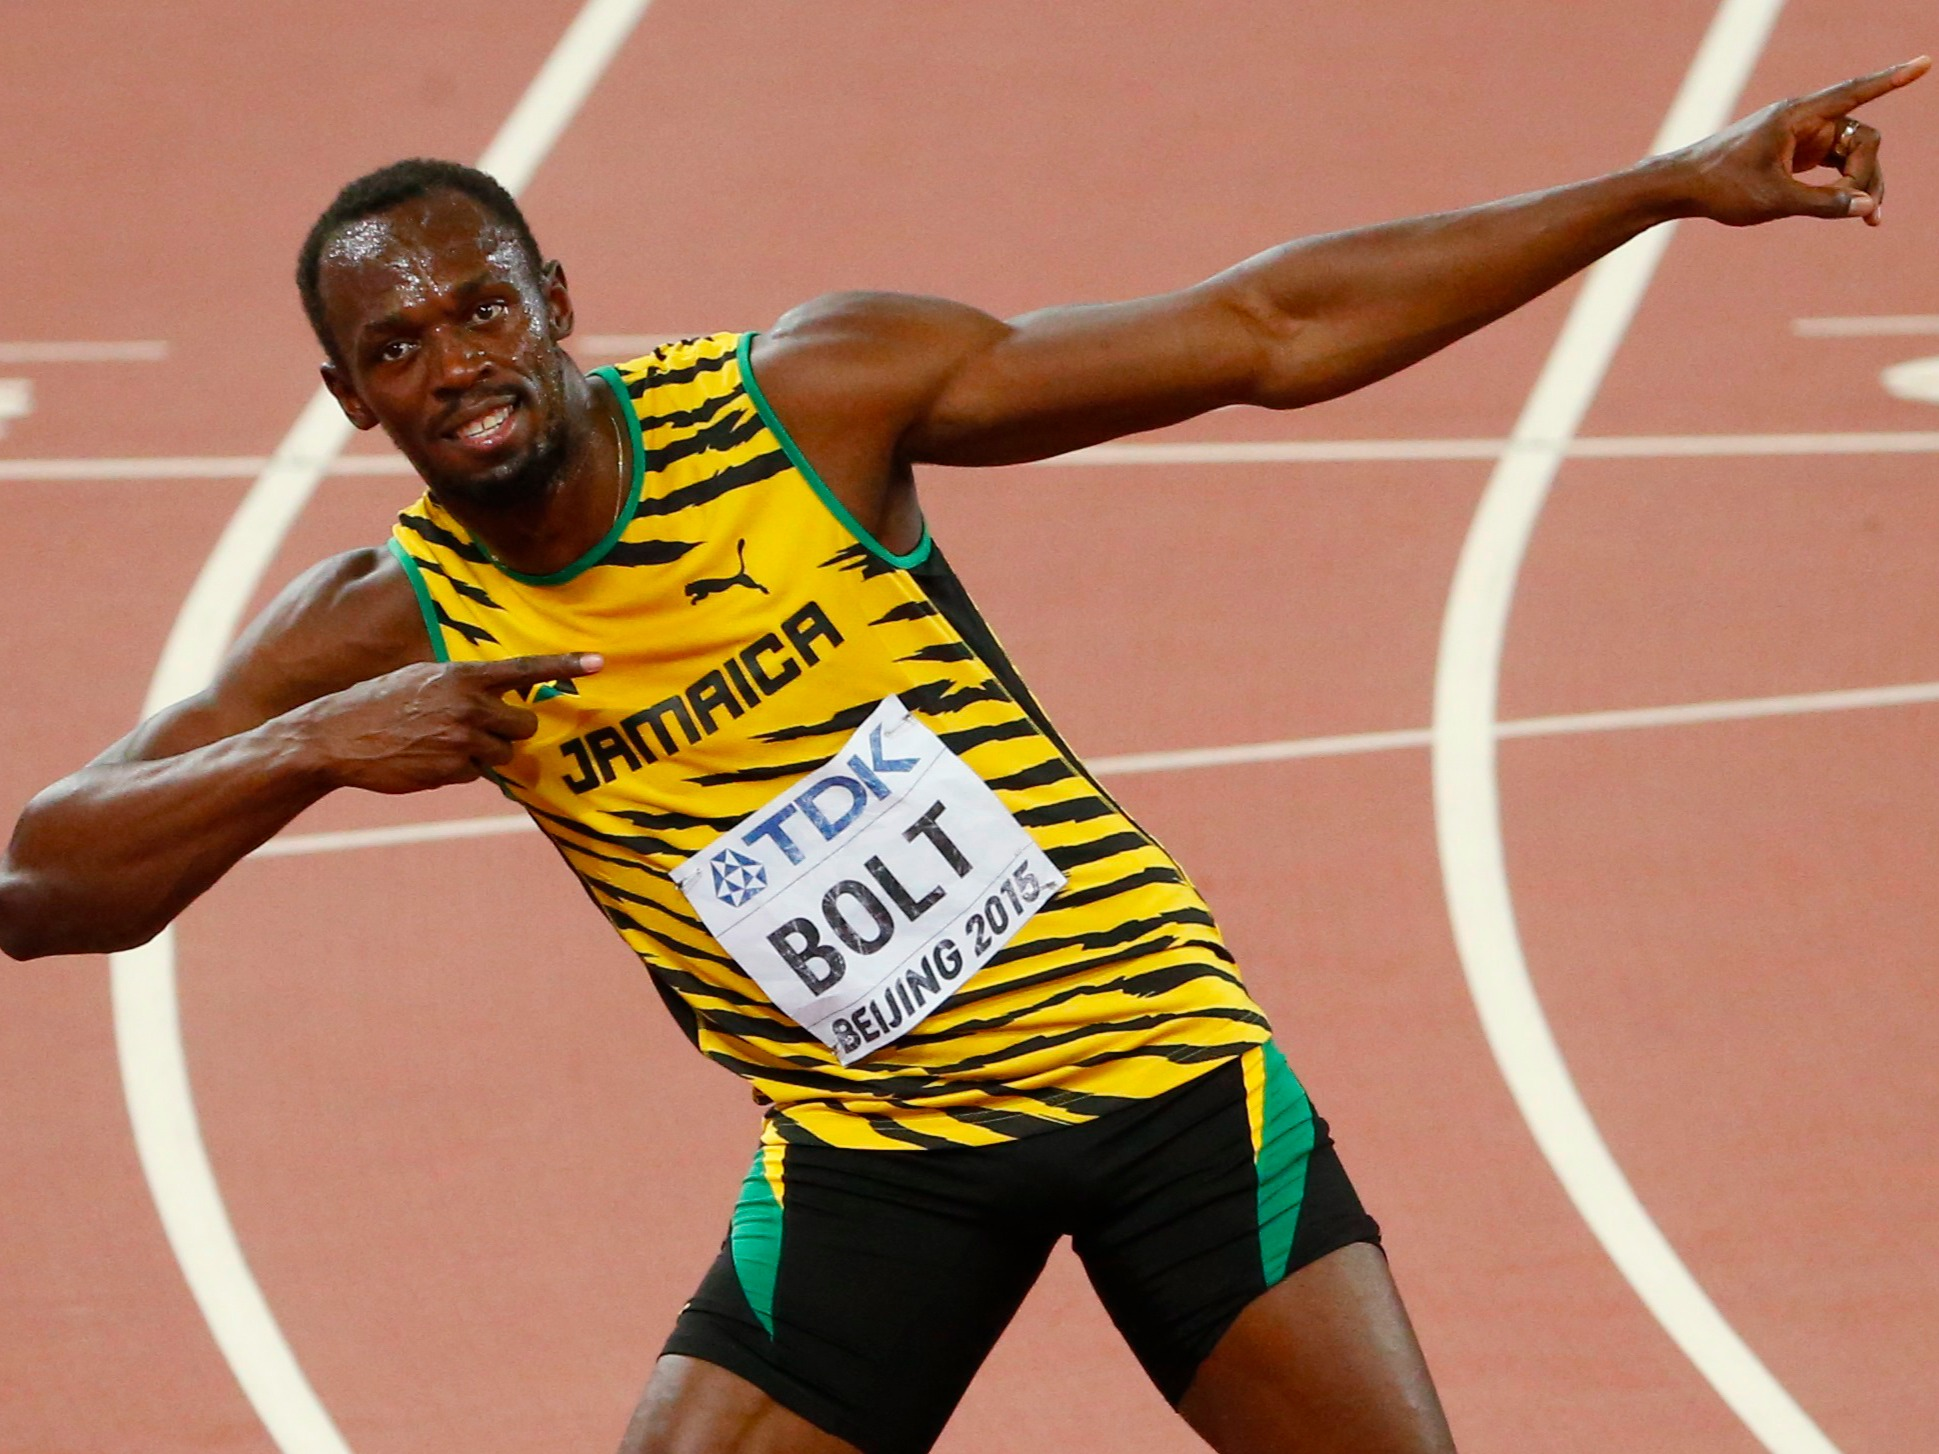 usain-bolt-wins-100-meter-world-championship-proving-he-is-still-the-fastest-man-alive